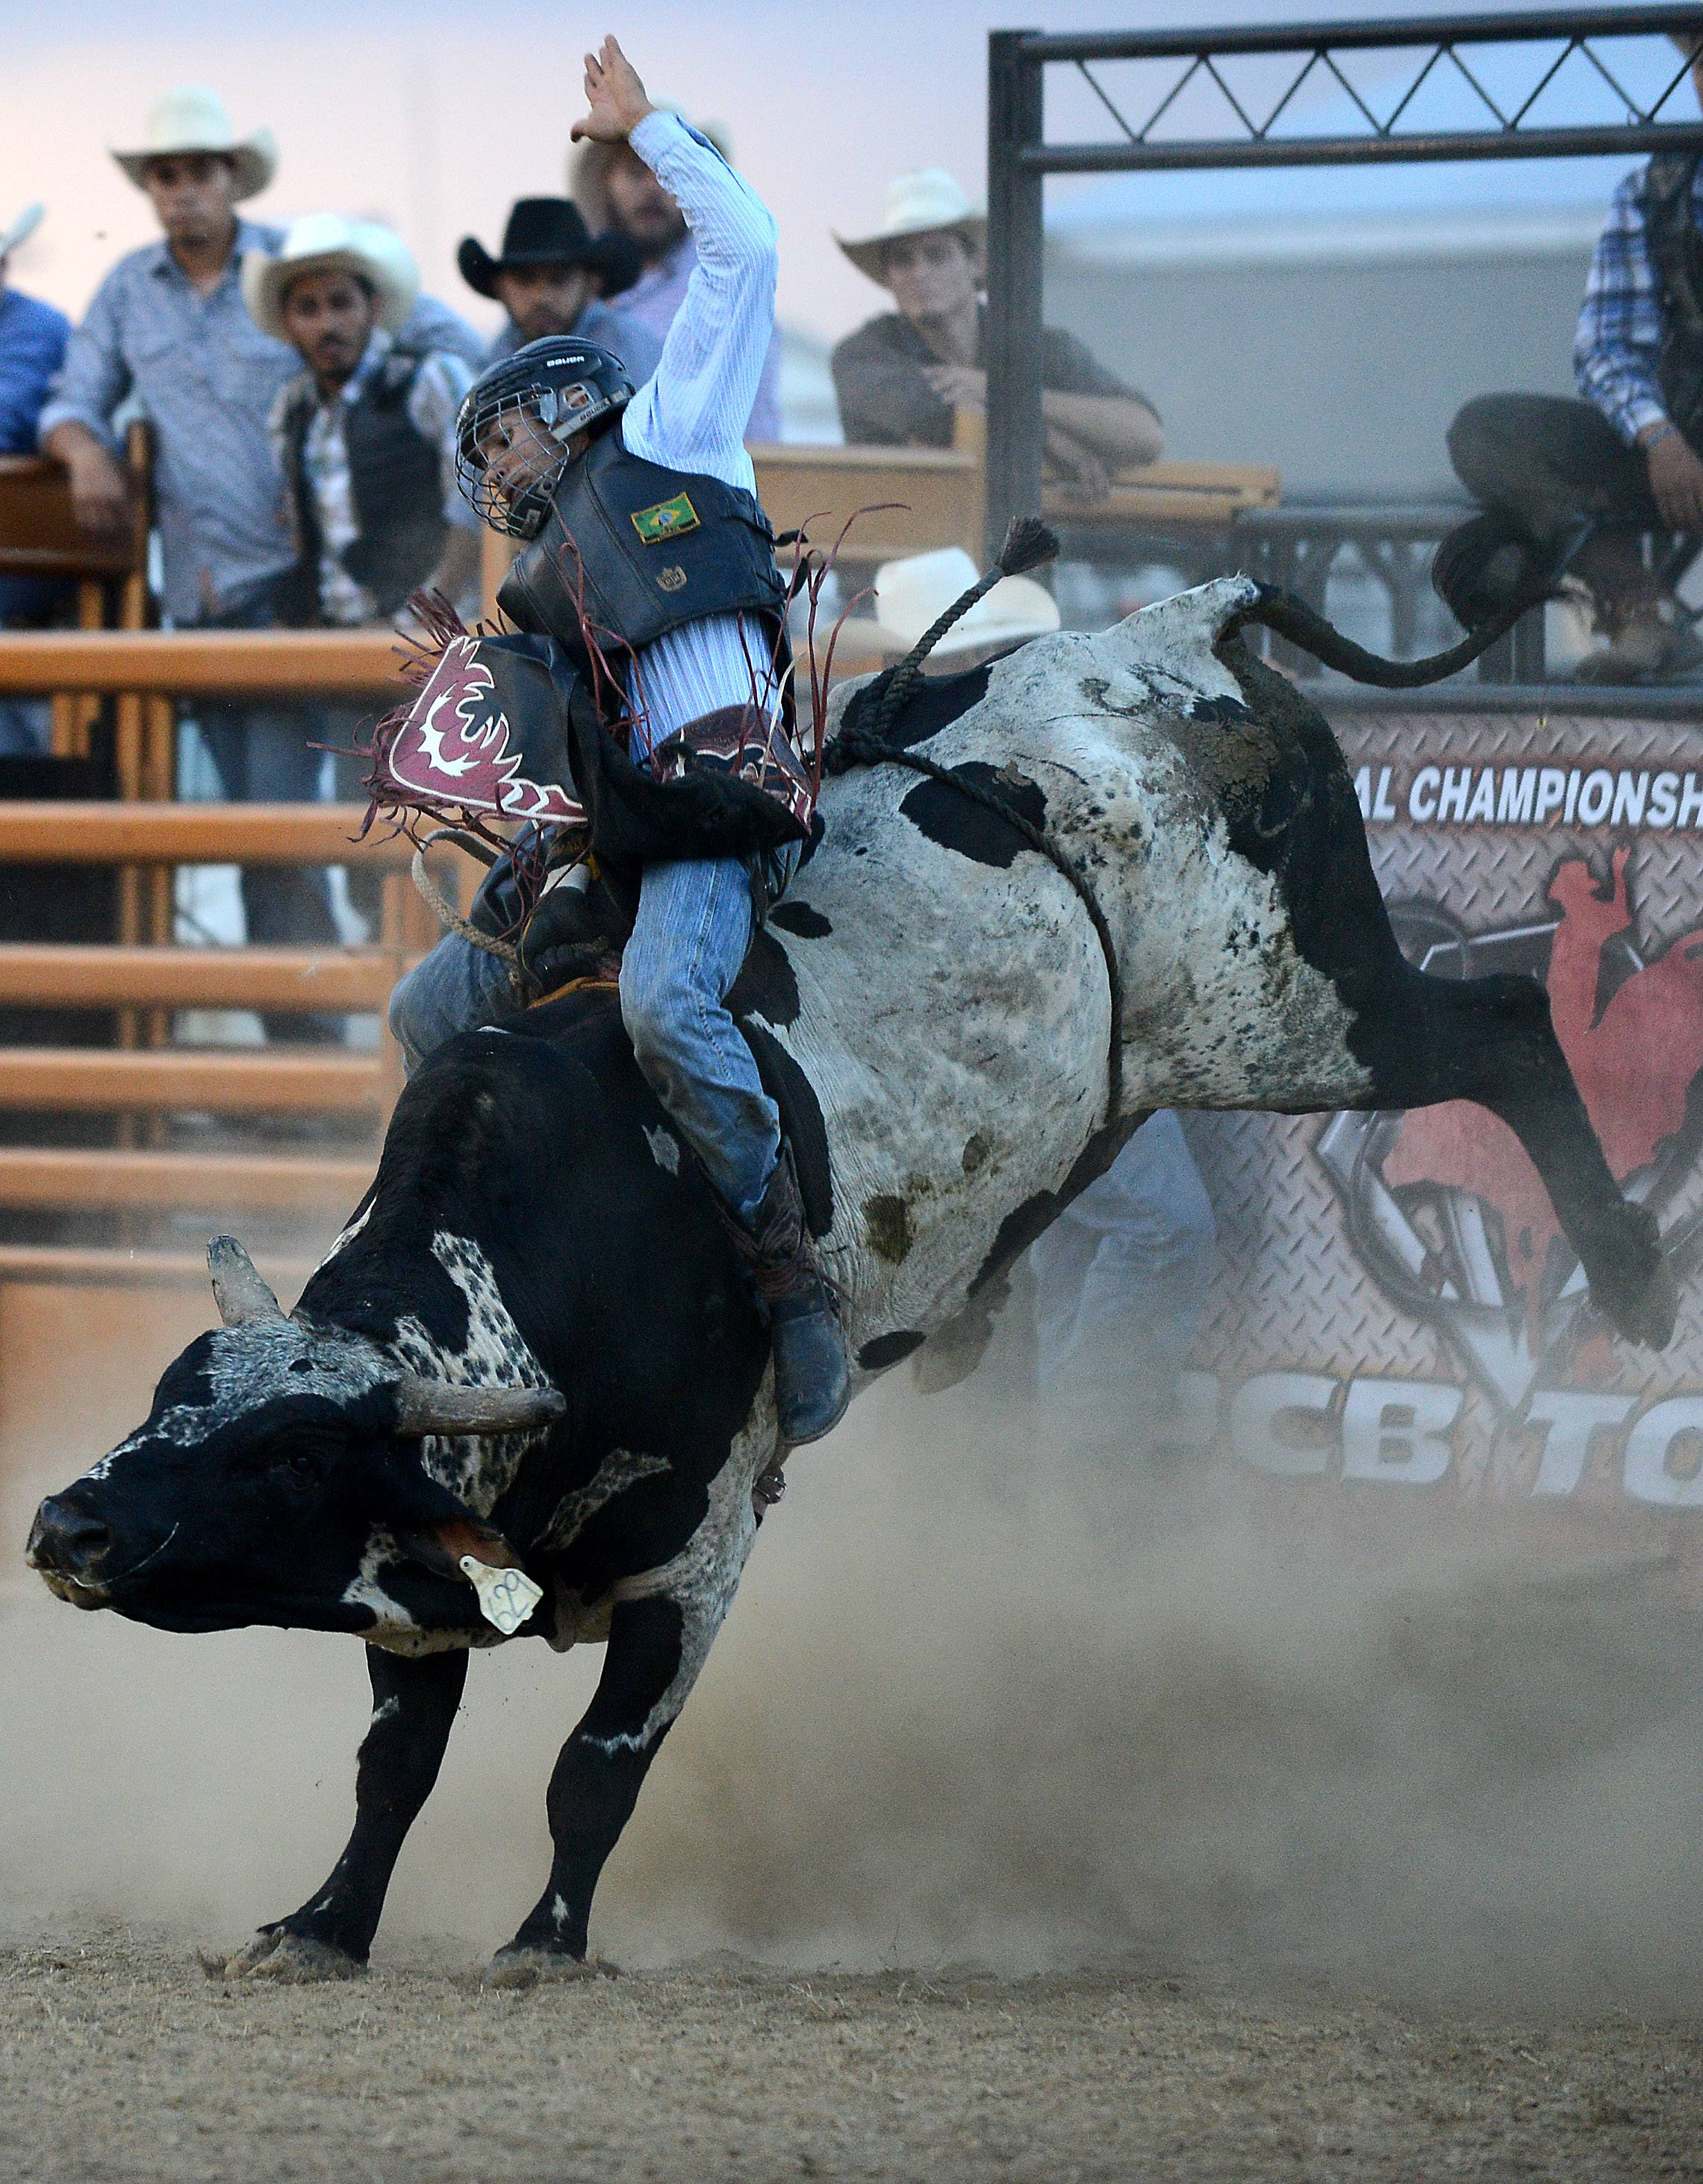 Championship Bull Riding returns to the Kane County Fair in St. Charles.